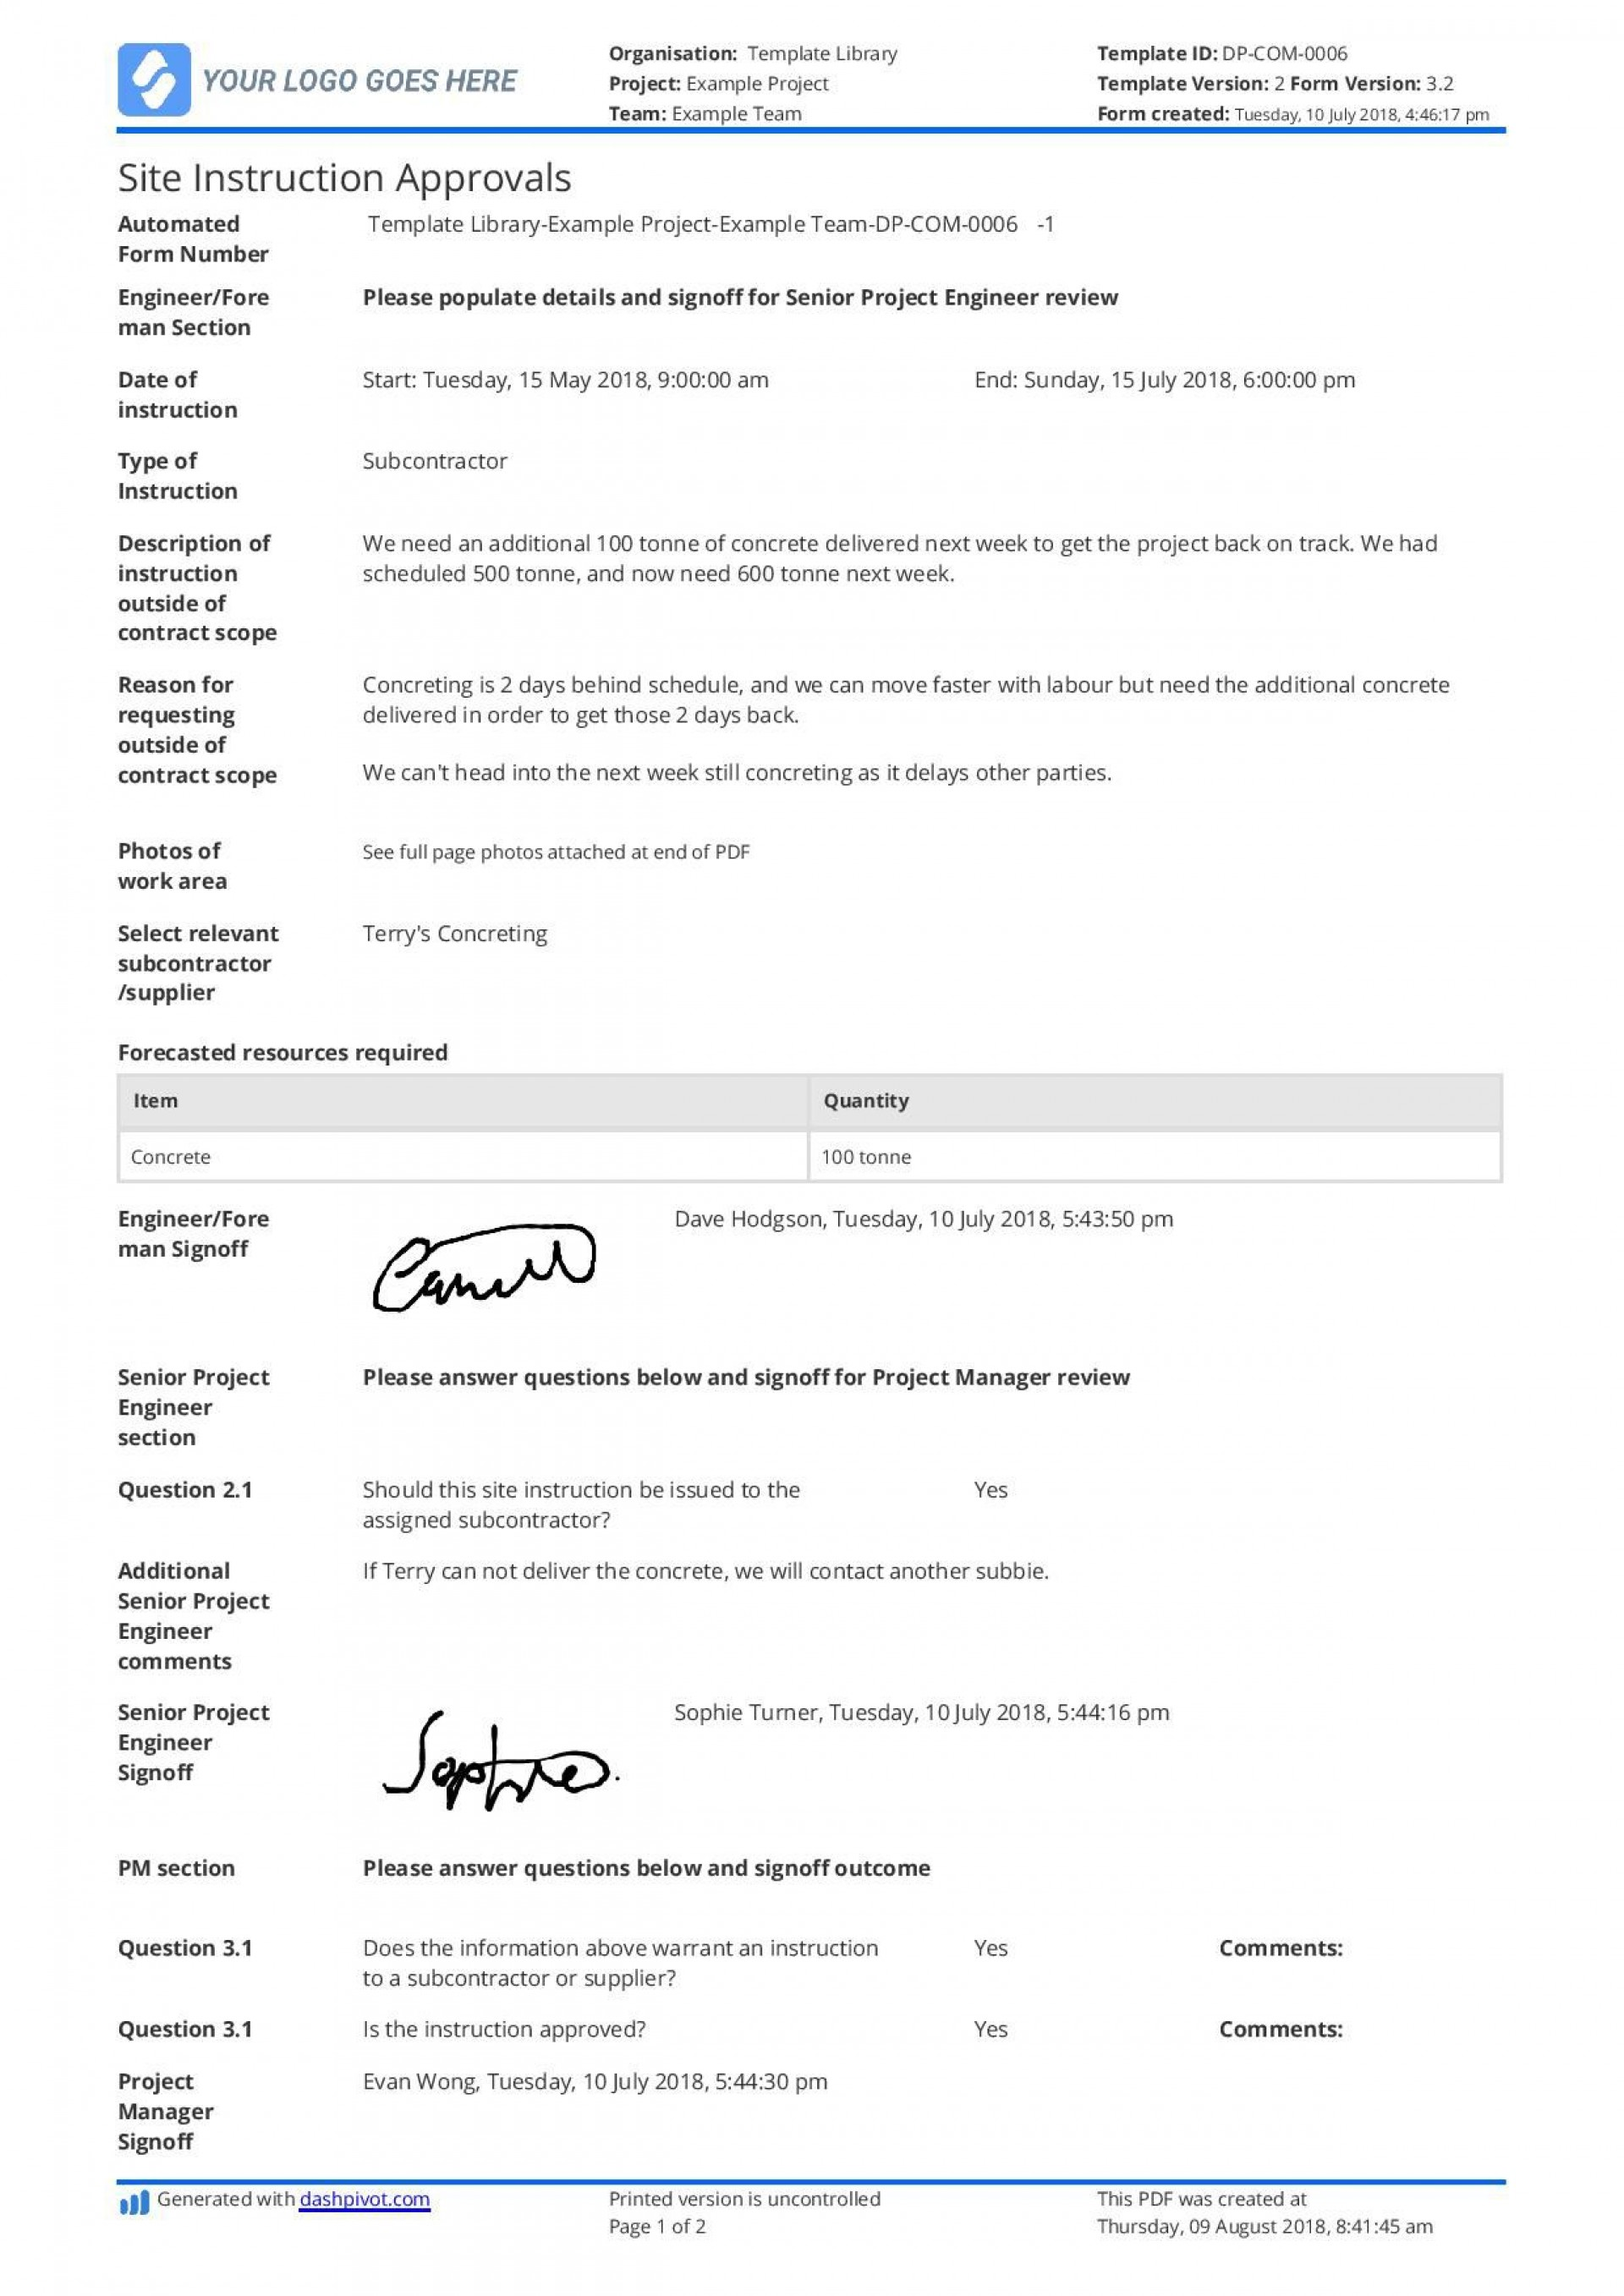 003 Formidable Step By Instruction Template Word Sample  Microsoft1920